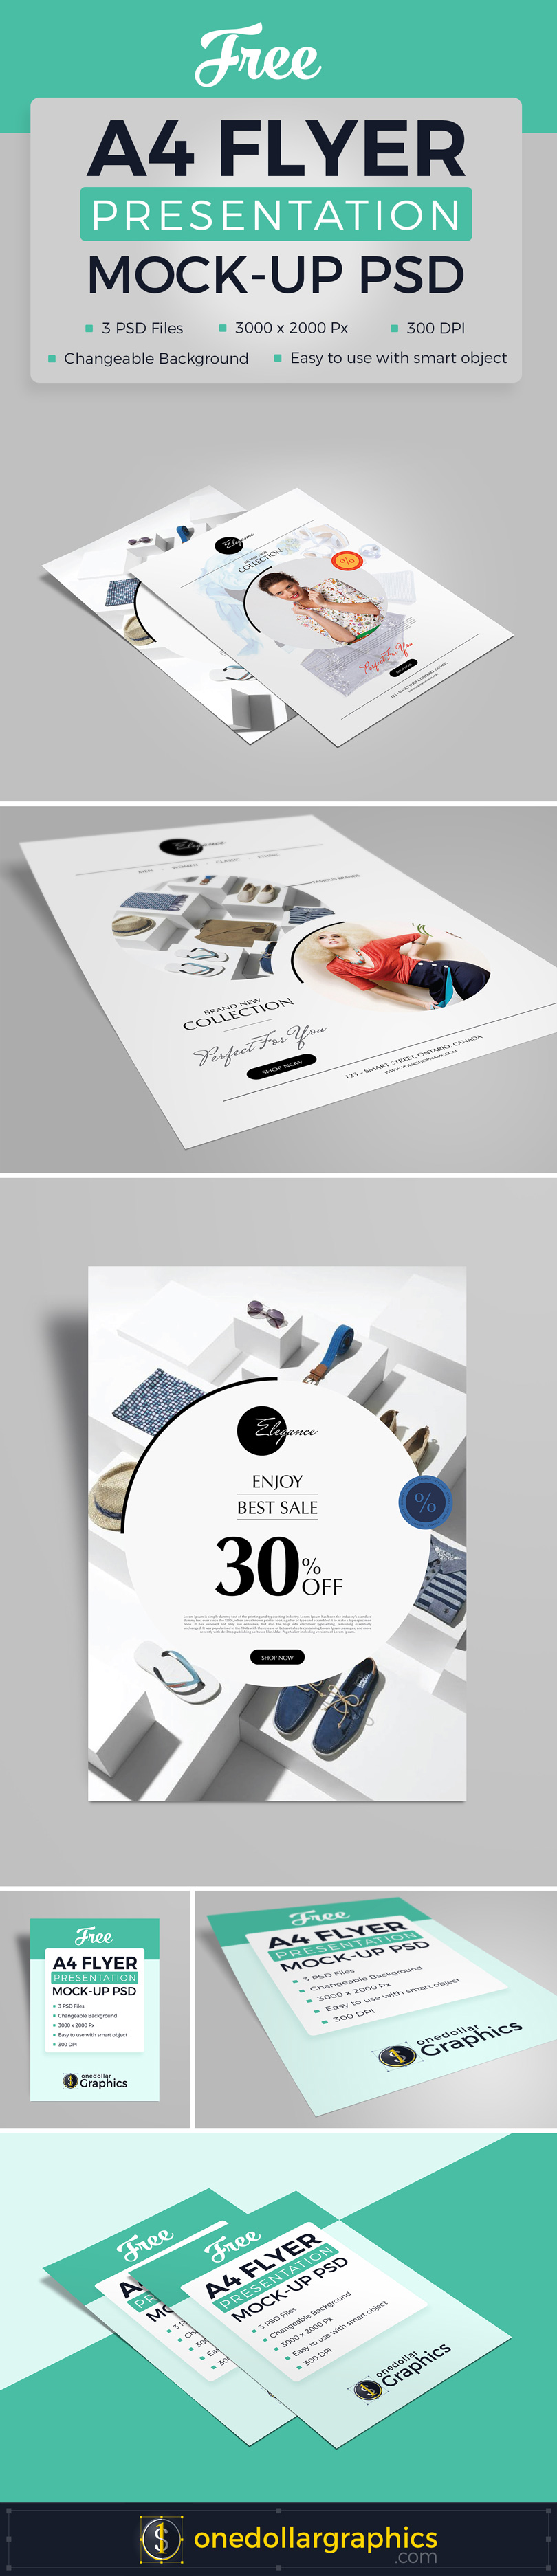 3 High Quality Free A4 Flyer Mockup PSD Files-1